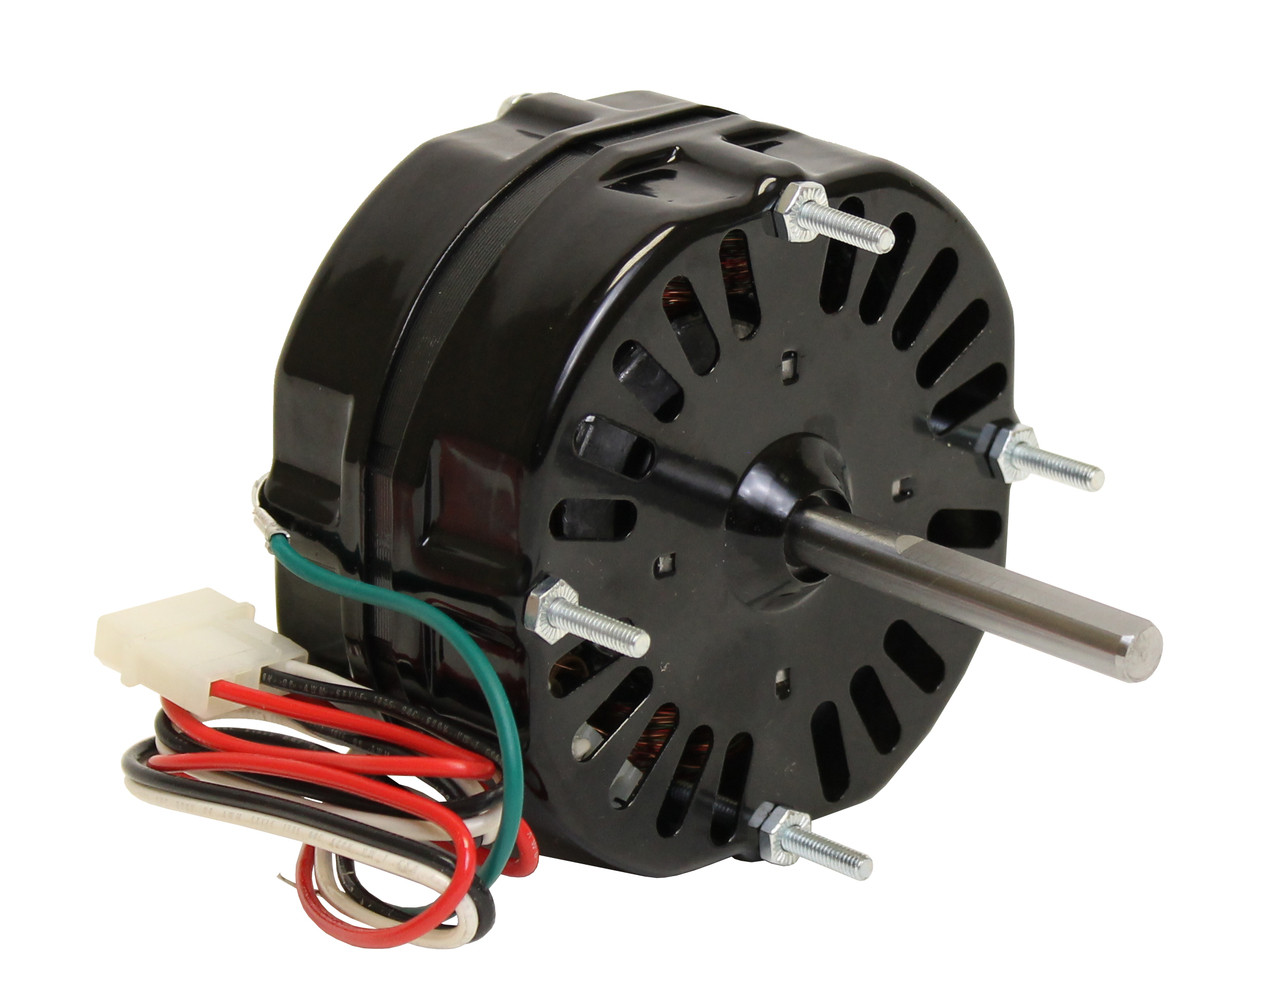 615053A__31268.1504204697.1280.1280?c=2 dayton, broan and lomanco attic fan motors electric motor warehouse  at gsmportal.co